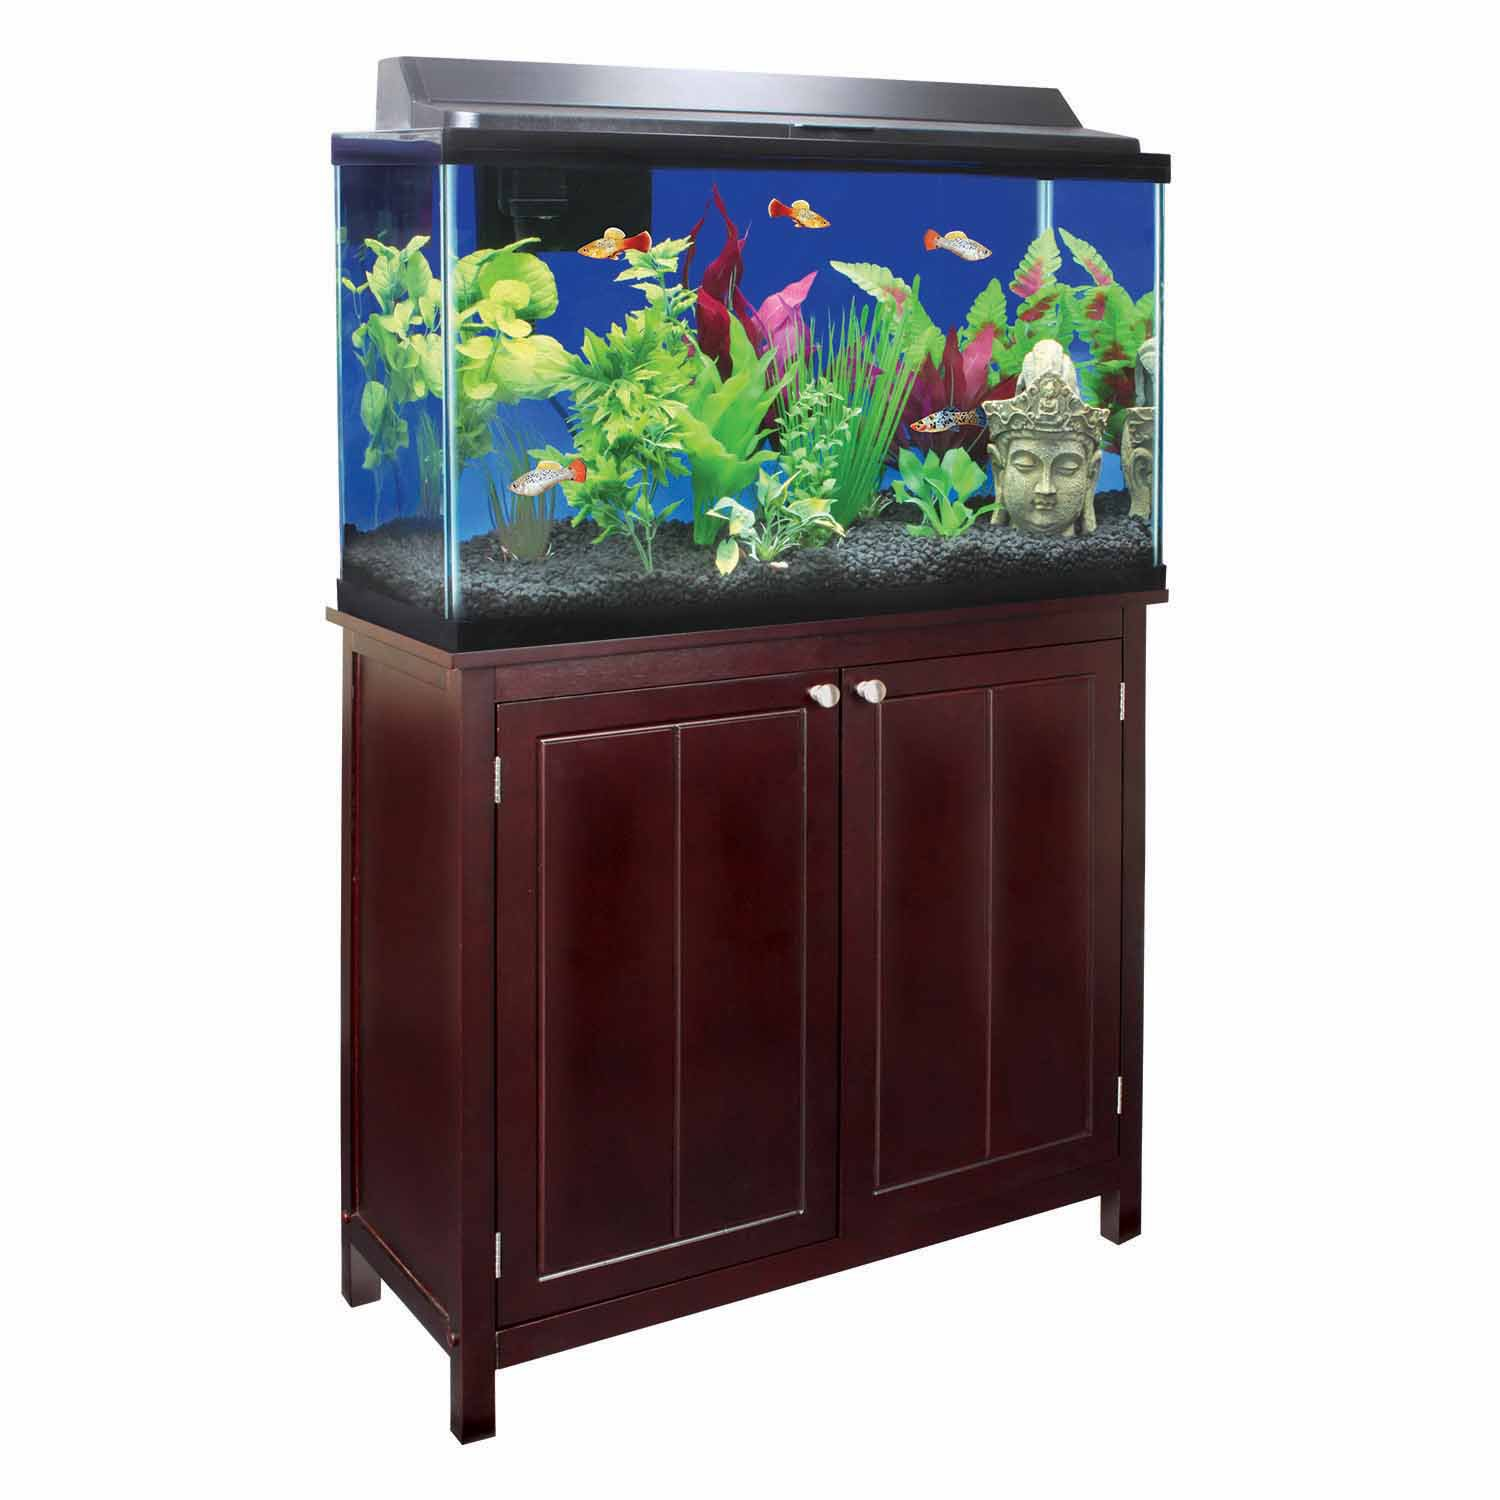 Imagitarium preferred winston tank stand 29 gallons petco for Fish tank table stand